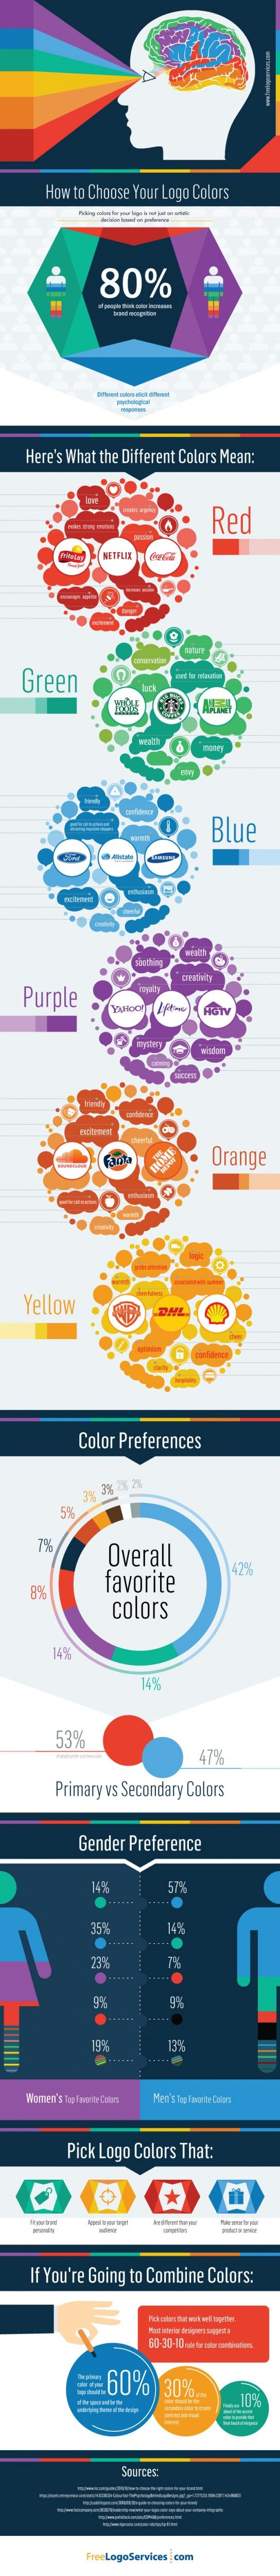 How to choose your logo colors ?